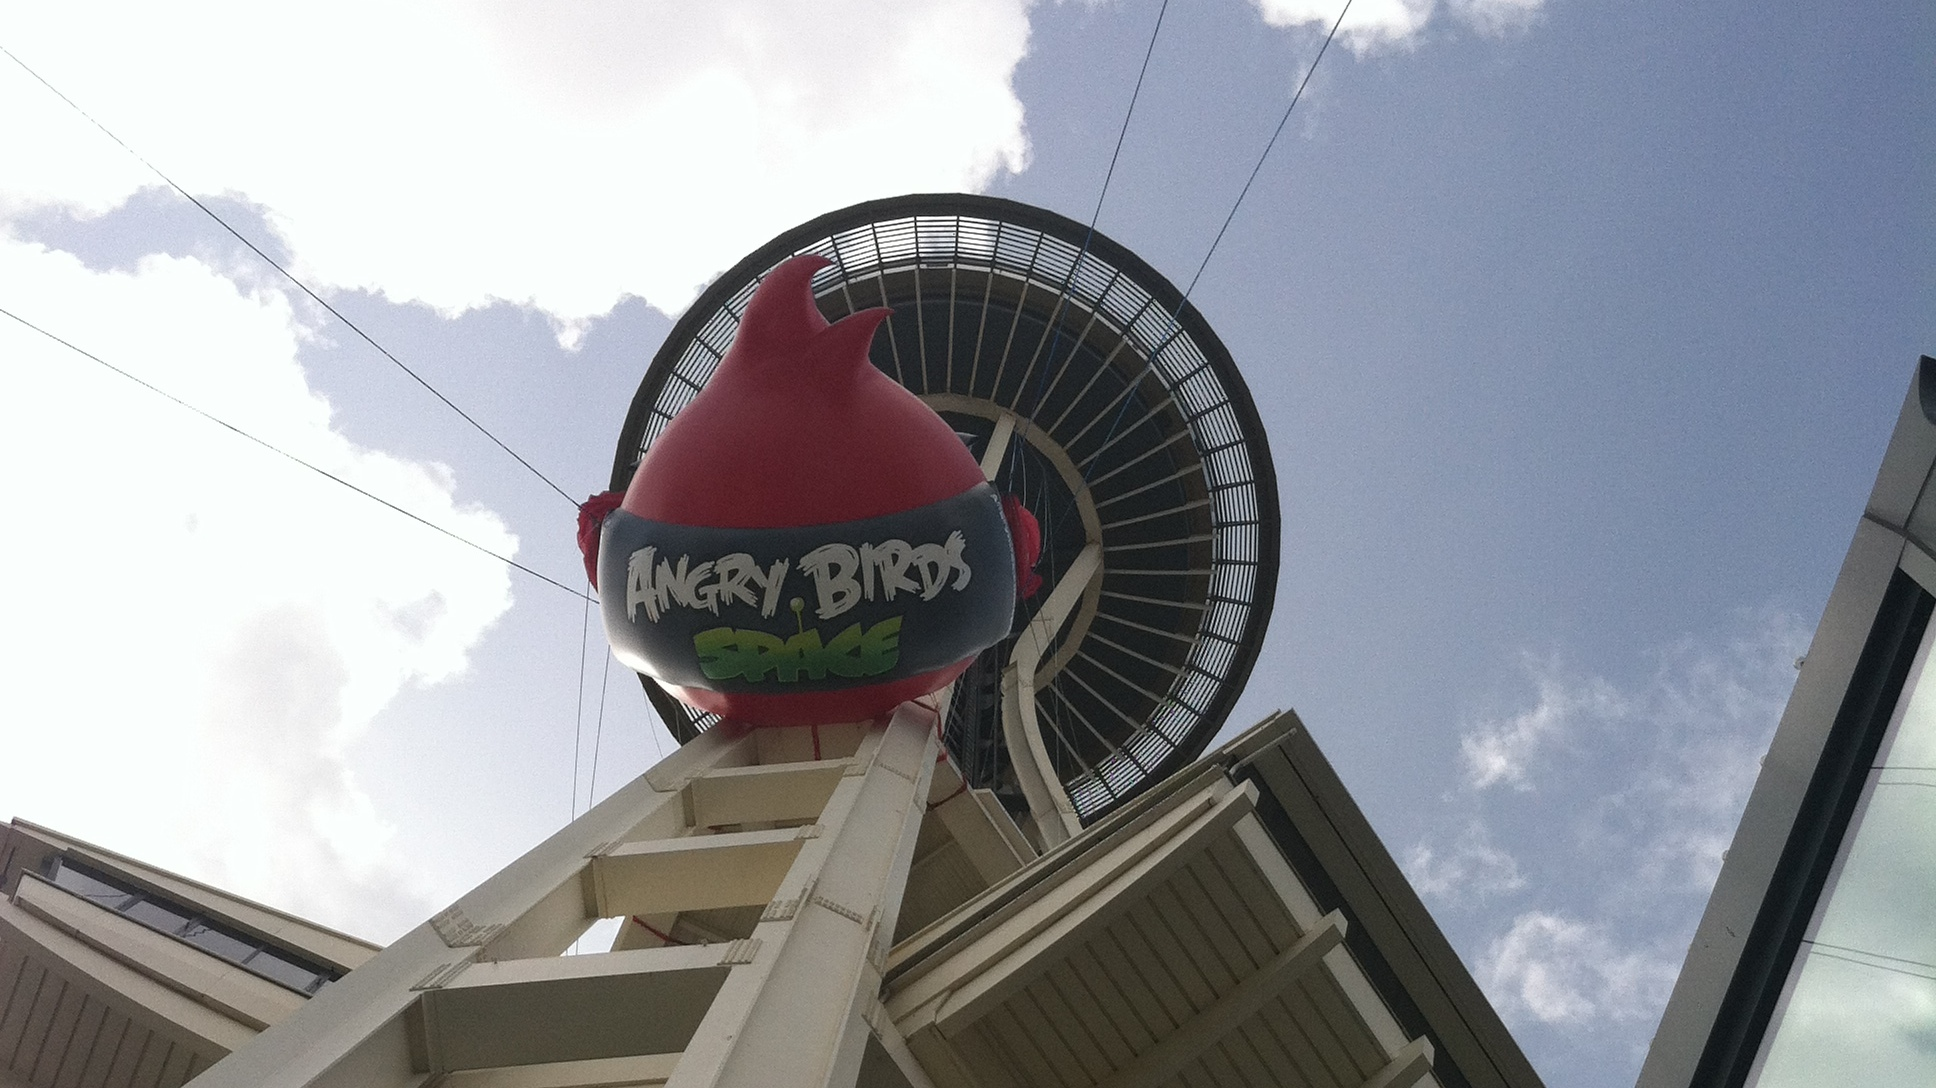 Seattles Space Needle Was Turned Into A Giant Angry Birds